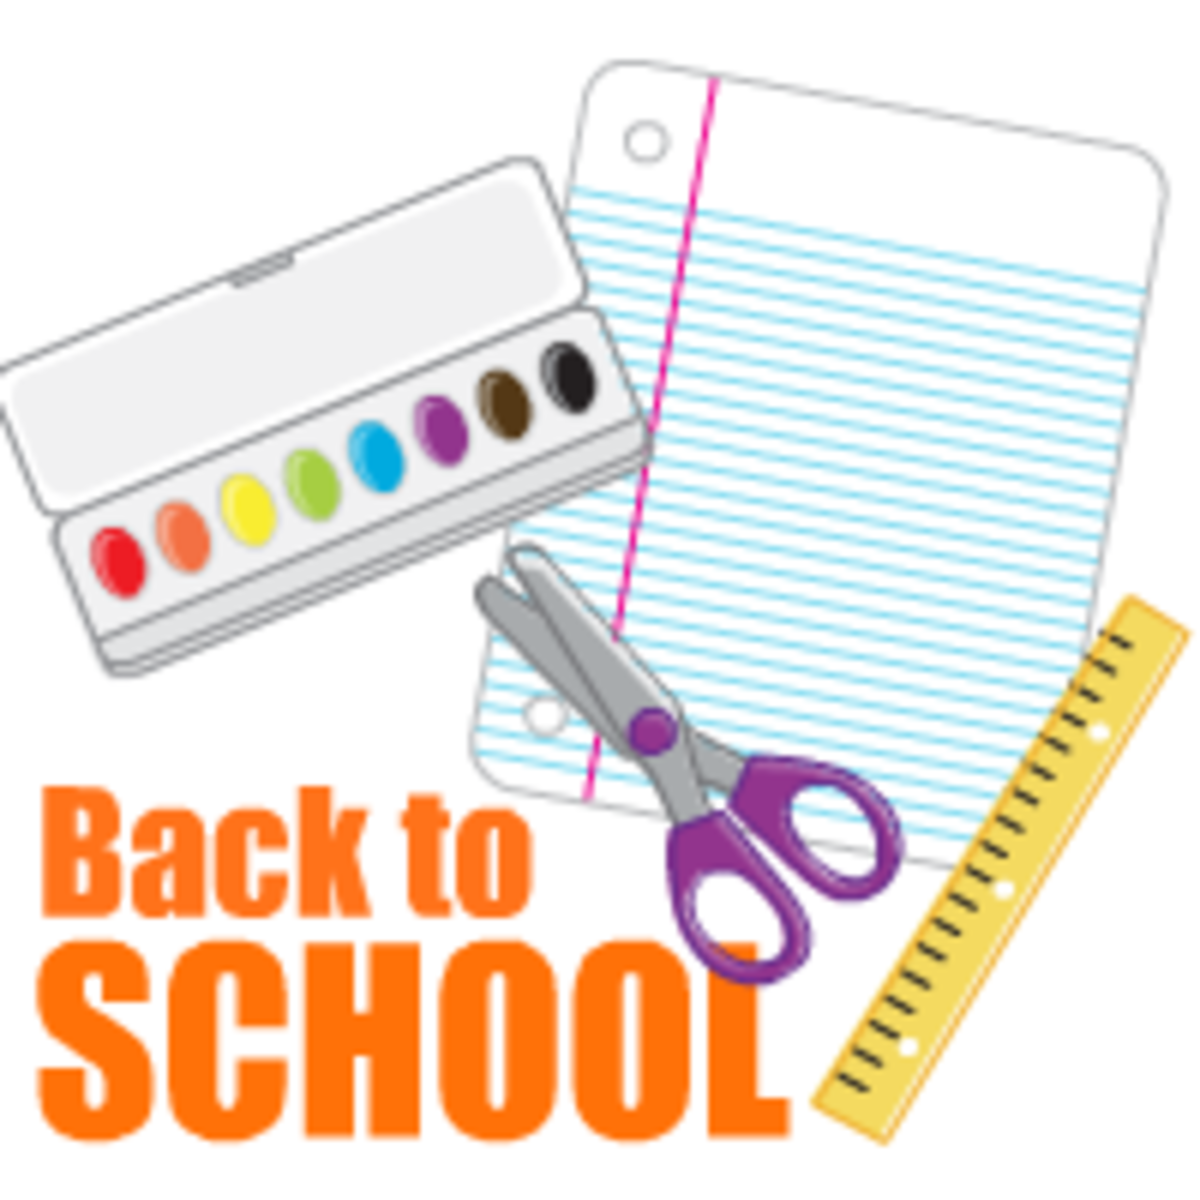 Back to school clip art: paint box, scissors, lined notebook paper, ruler